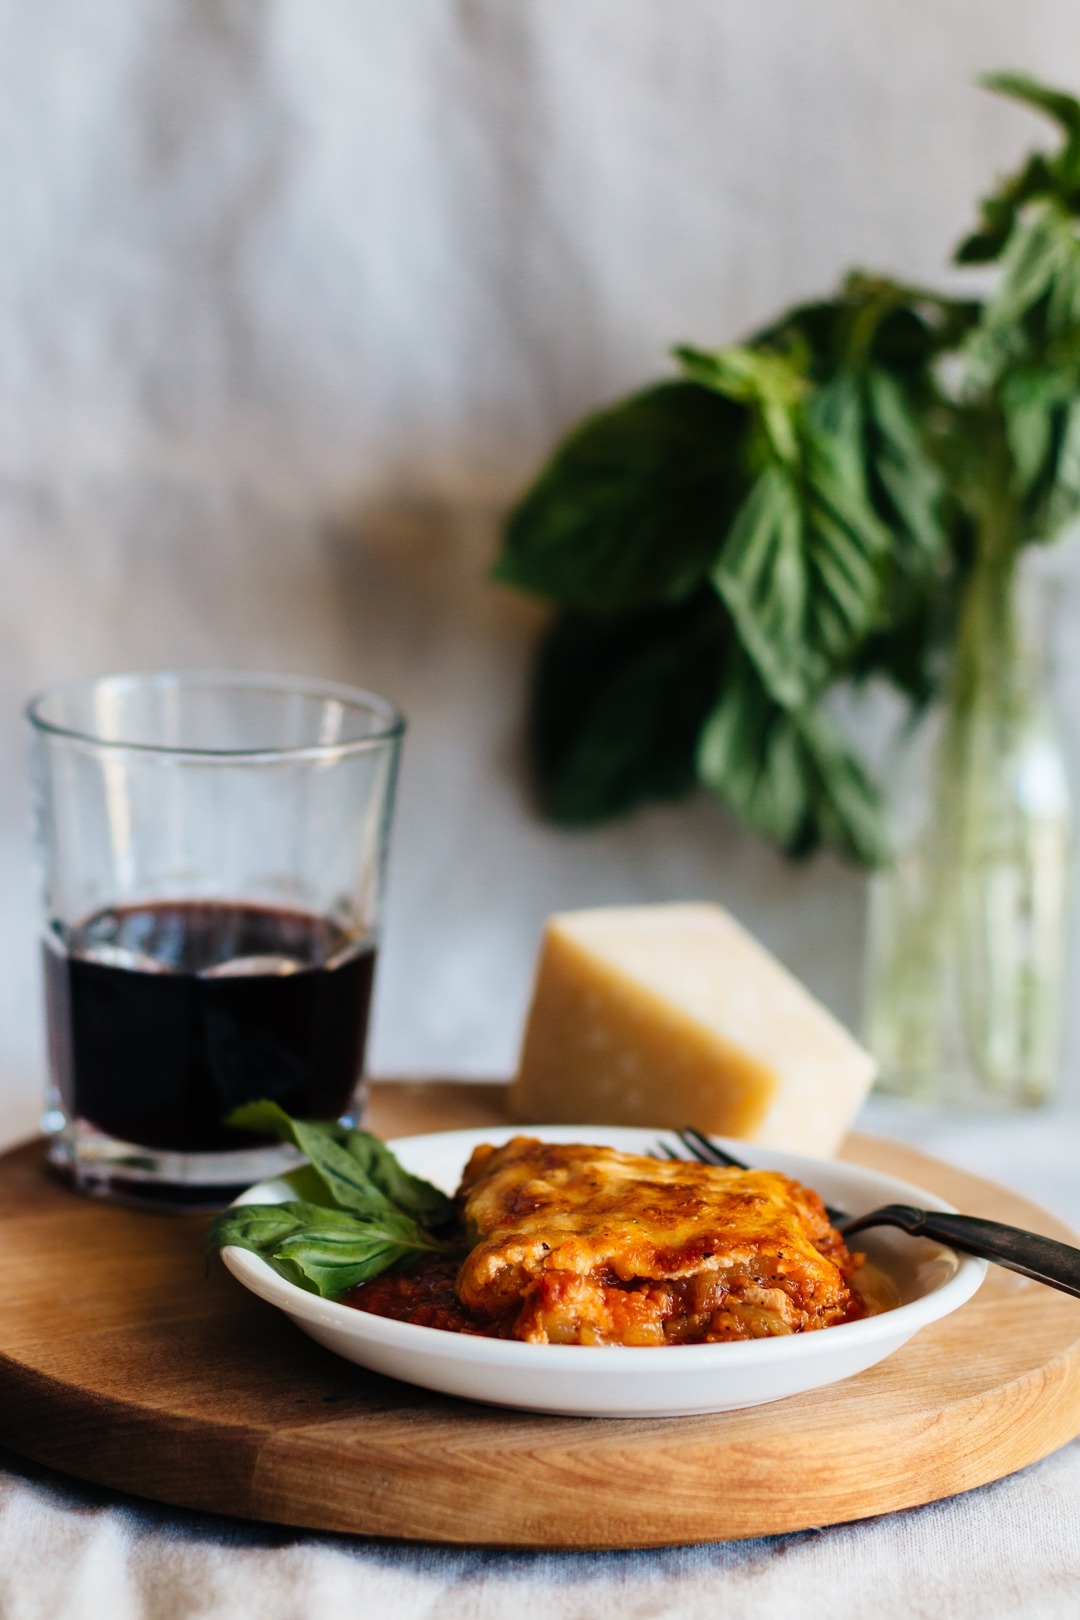 Vertical shot of a slice of zucchini lasagna on a plate with a fork surrounded by parmesan cheese and a glass of wine.